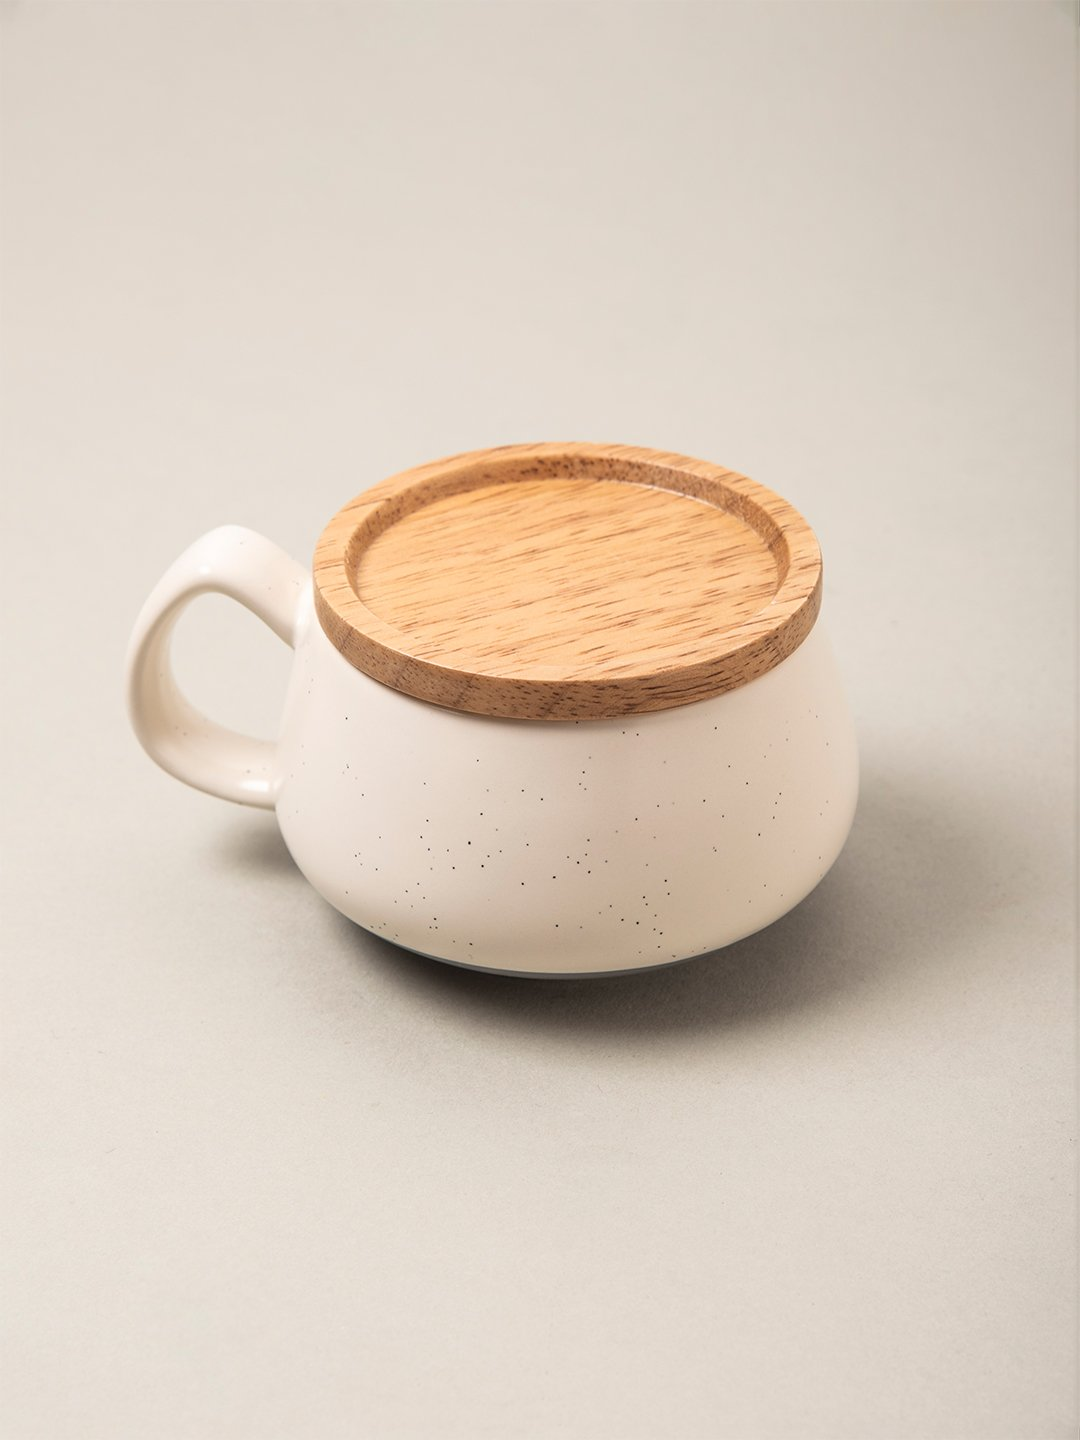 My Life Handmade - Cream Mug and Wooden Coaster